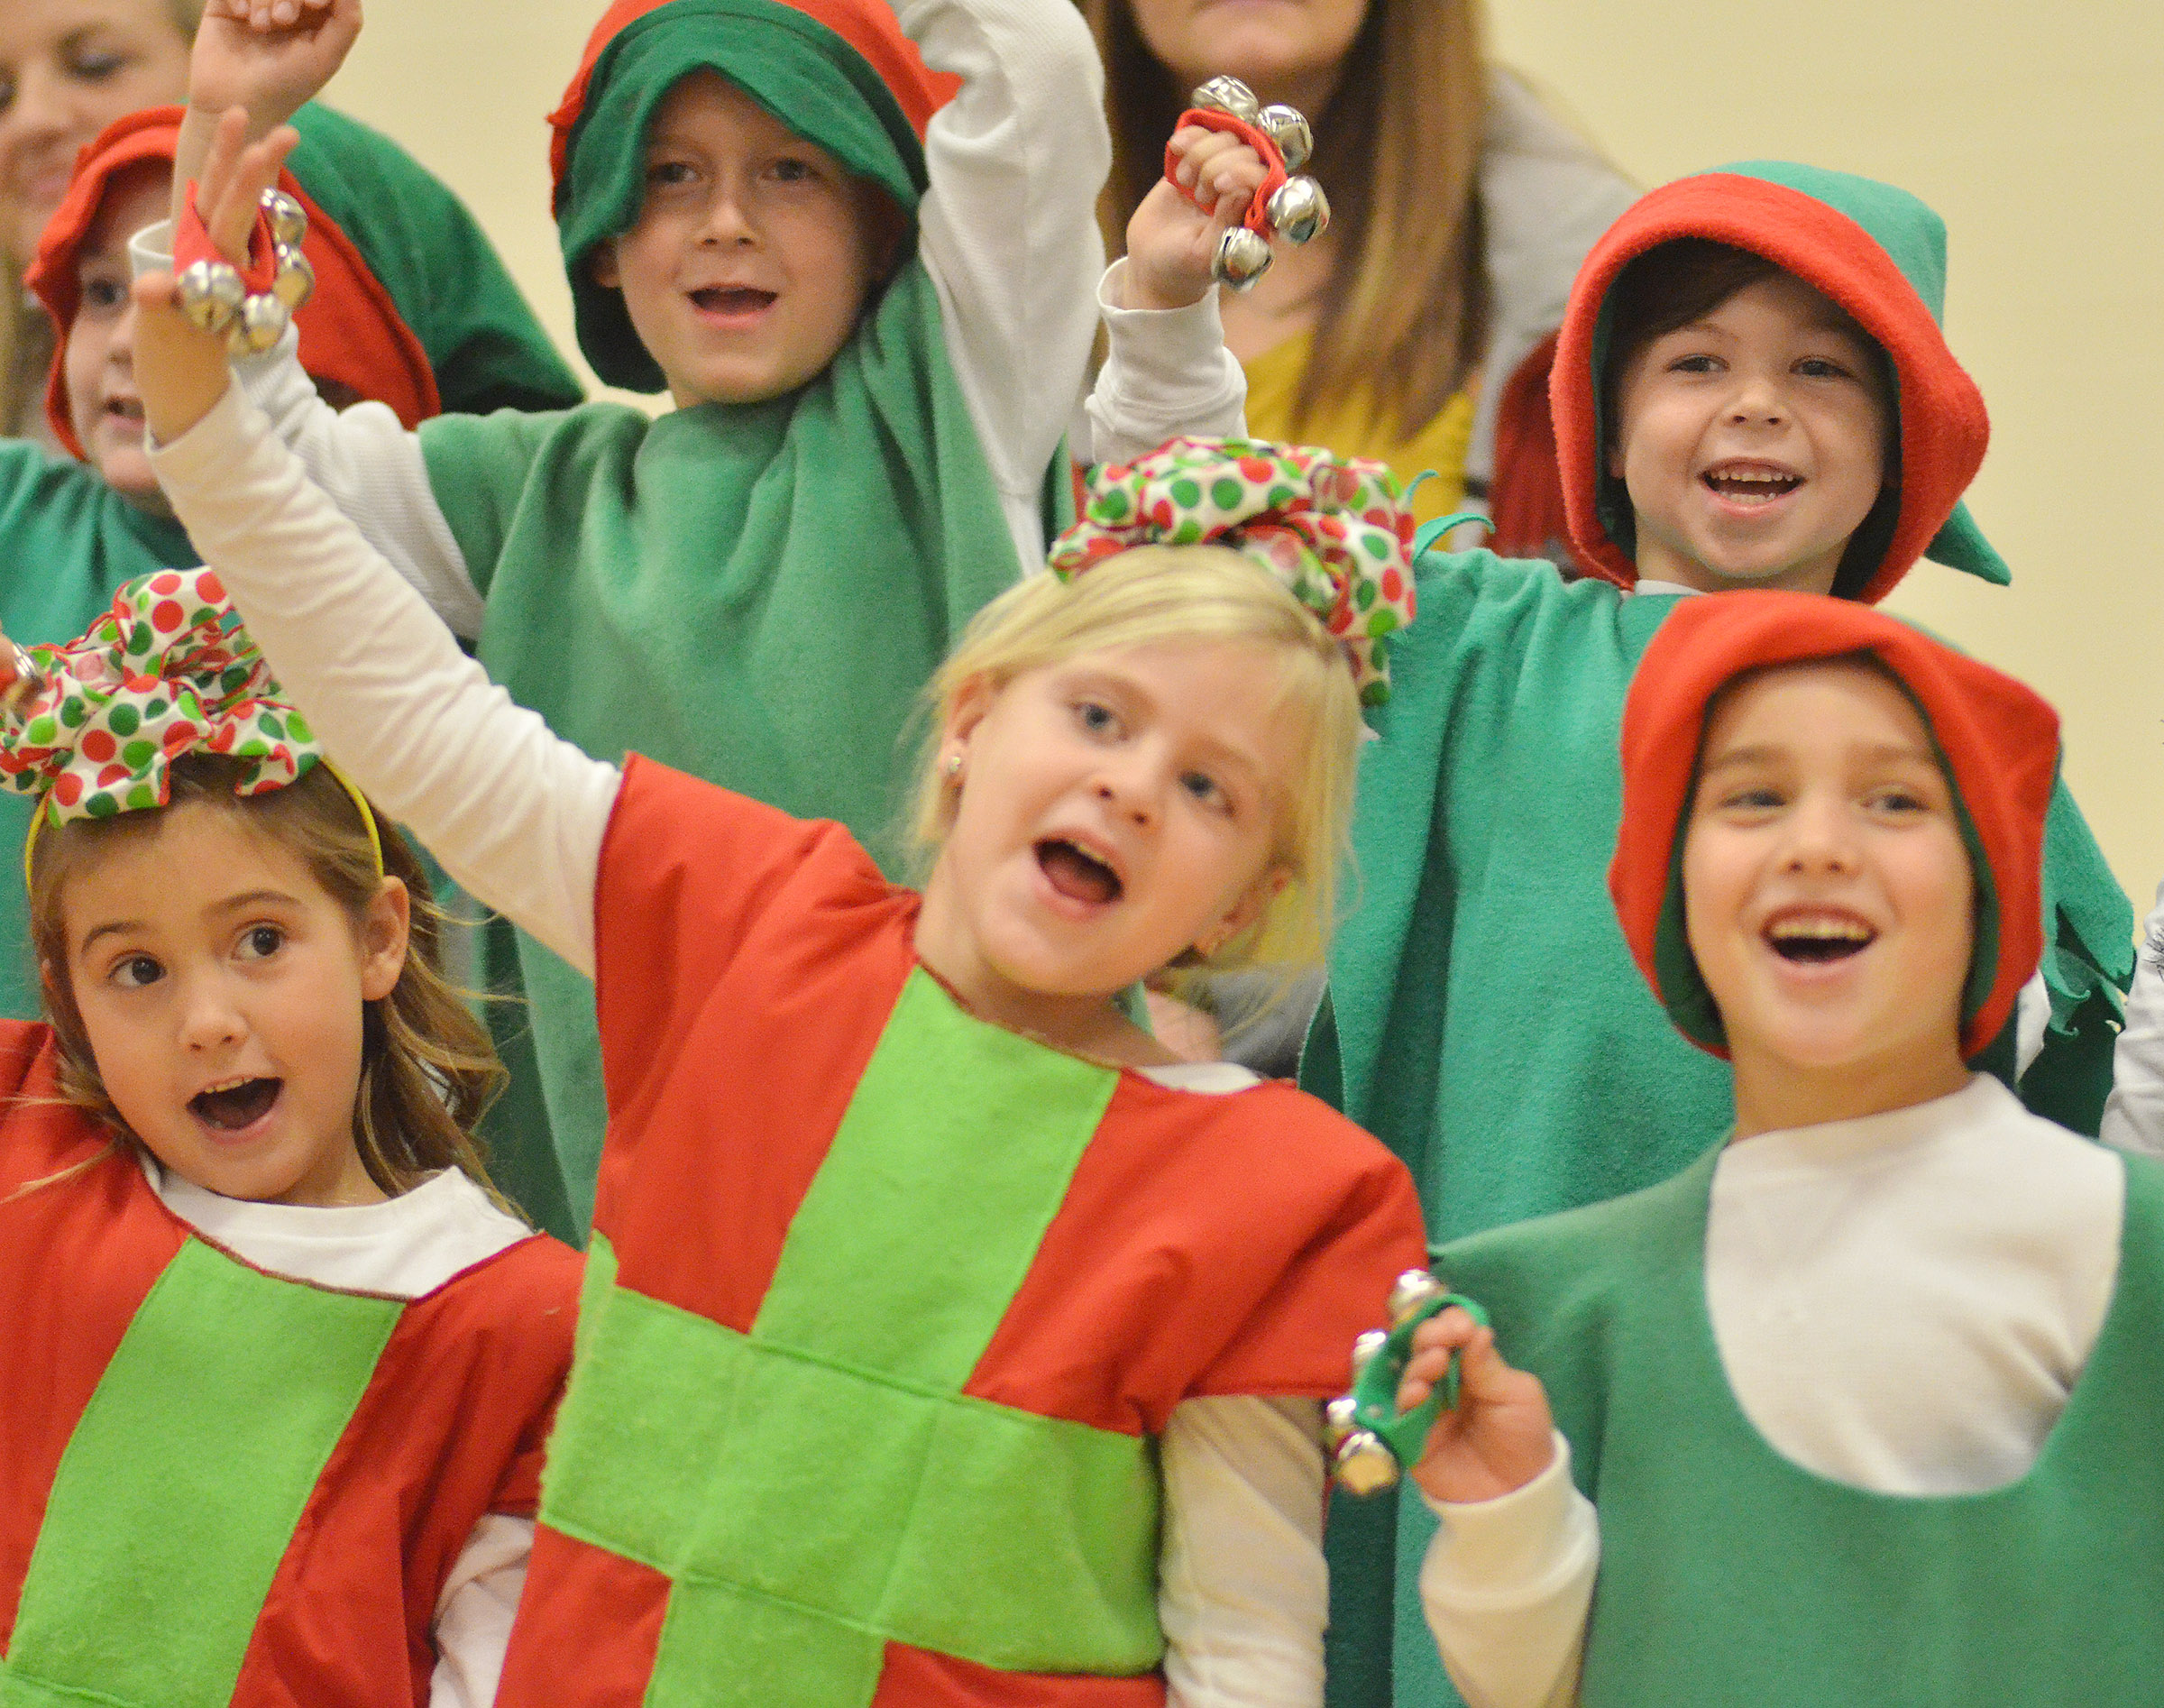 CES kindergarteners, from left, front, Blakely Gray, Remi Petett and Dane Gray sing and dance. In back are Jacob Parrish and Bentley Wilhoite.